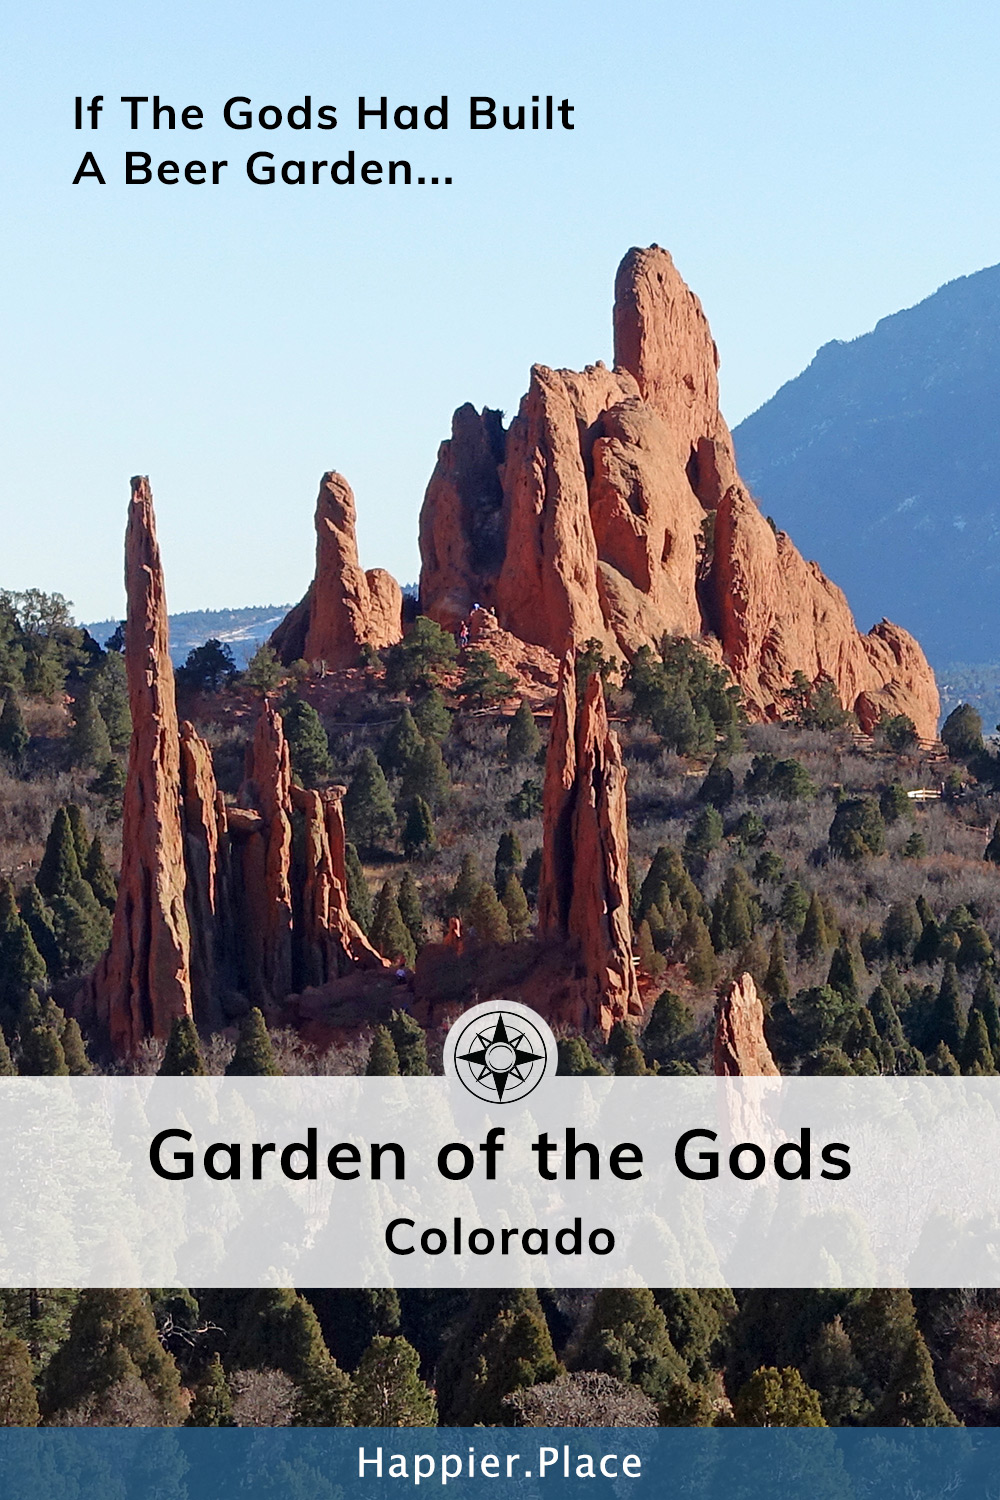 If the Gods had a beer garden: Garden of the Gods (Colorado) - #HappierPlace